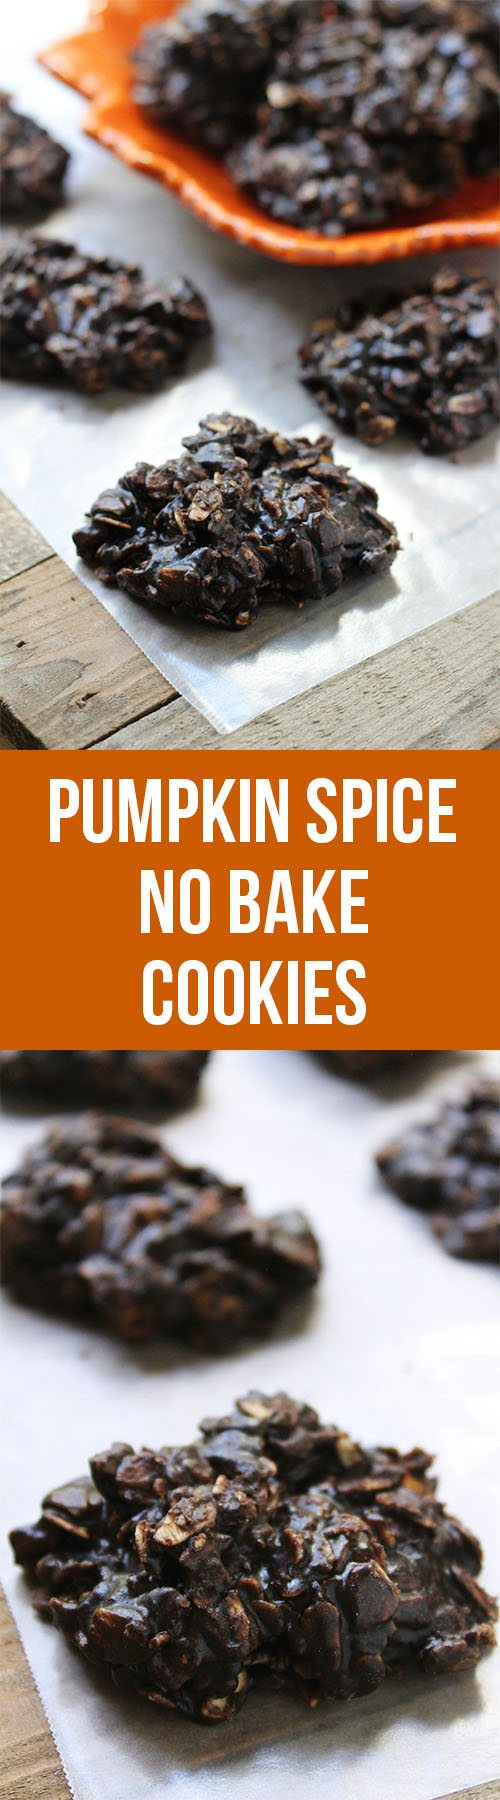 Pumpkin Spice No Bake Cookies - The perfect combo of pumpkin and chocolate, without a lot of work!